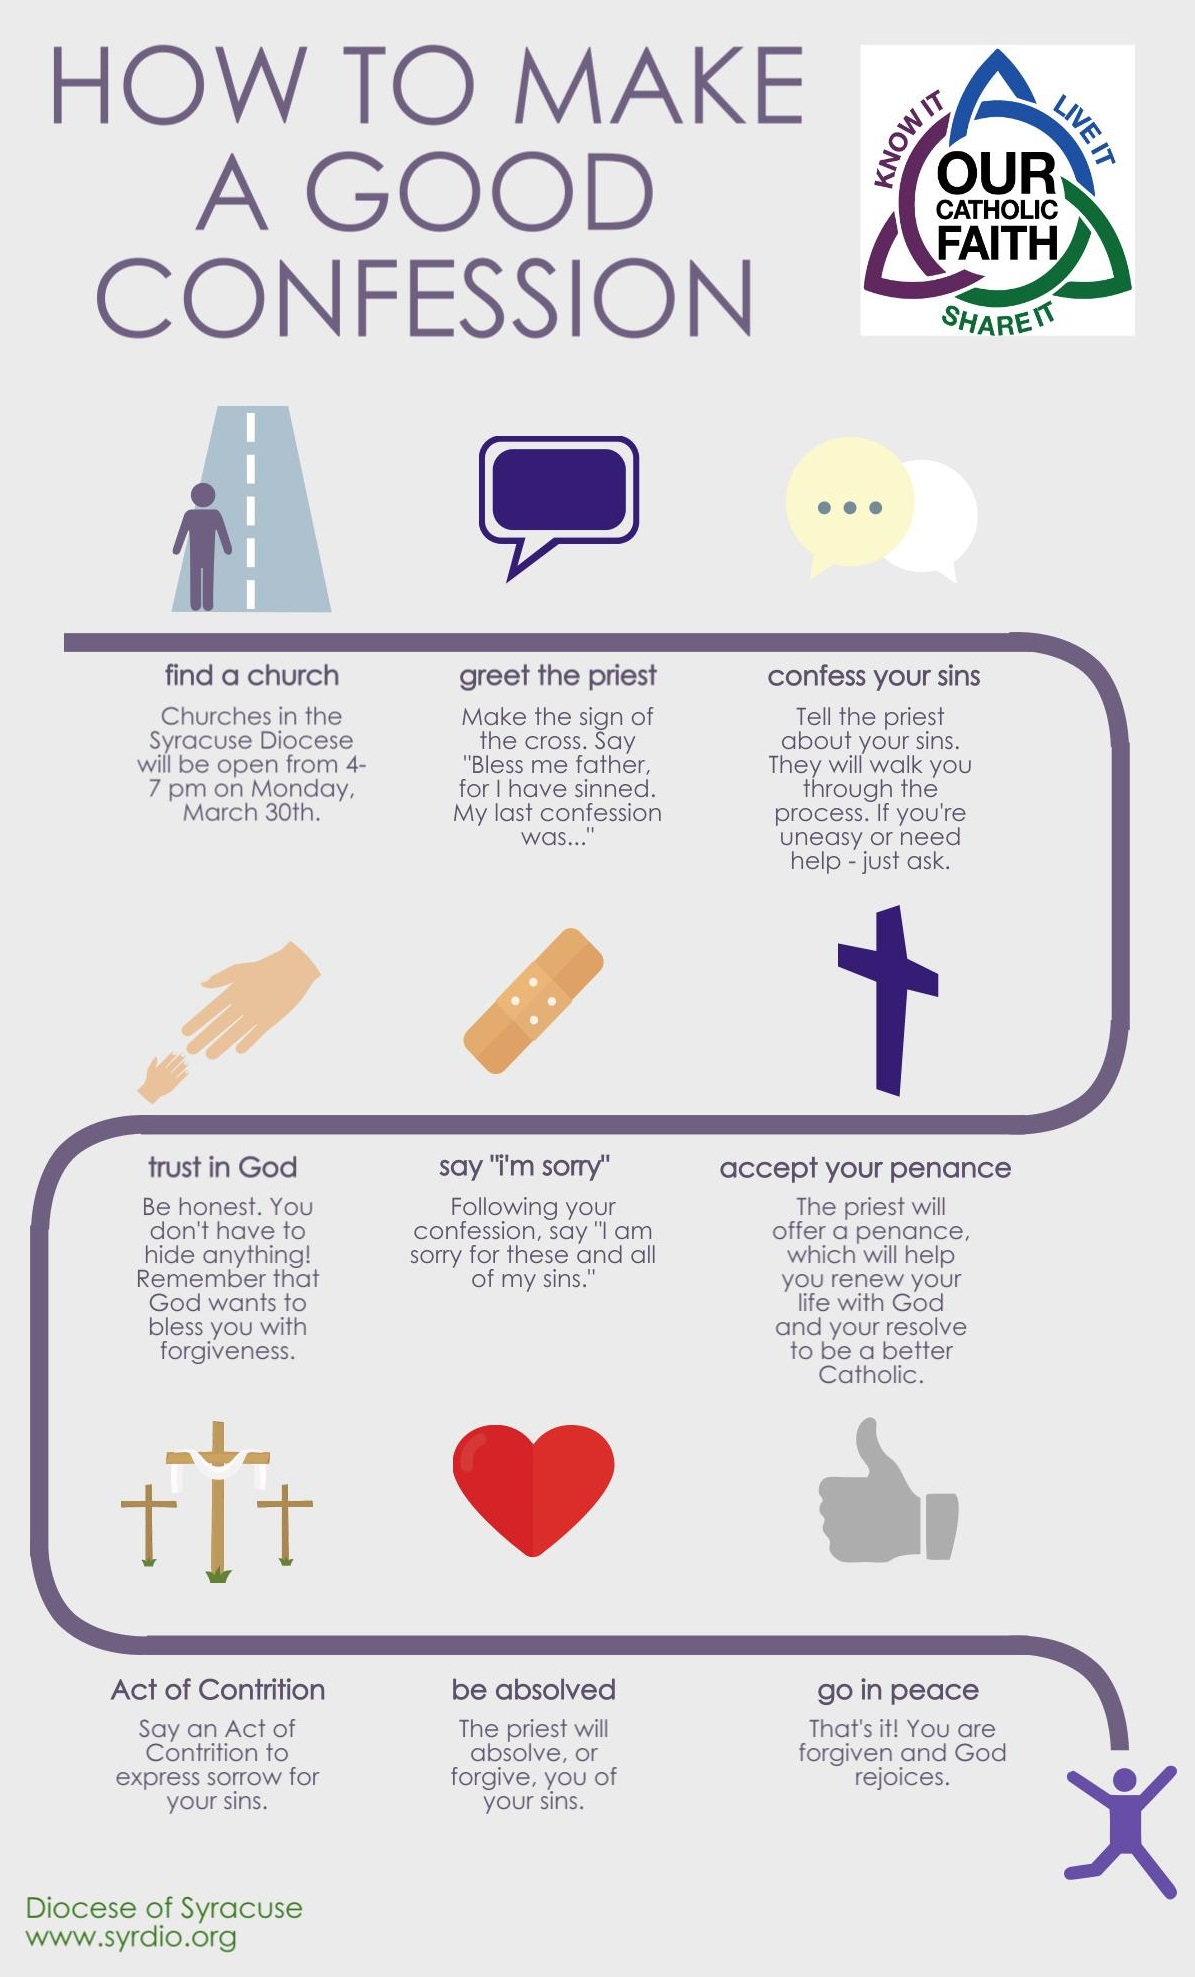 How To Make A Good Confession In One Infographic